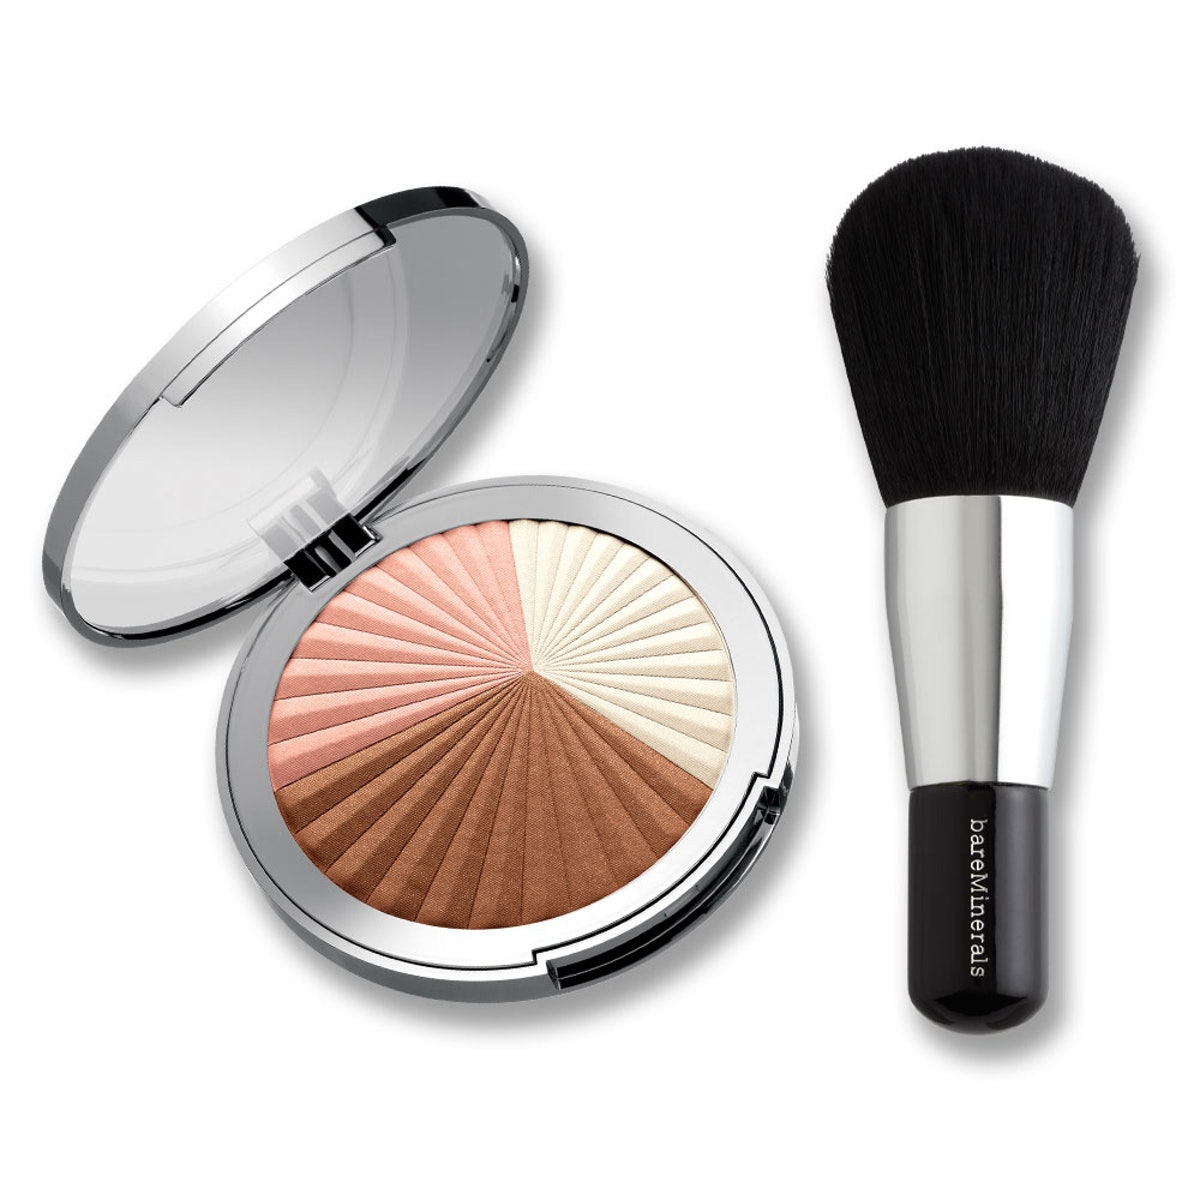 BareMinerals Ready Face & Body Luminizer, $45 (including brush), [nordstrom.com](http://rstyle.me/n/drkd83w3n).